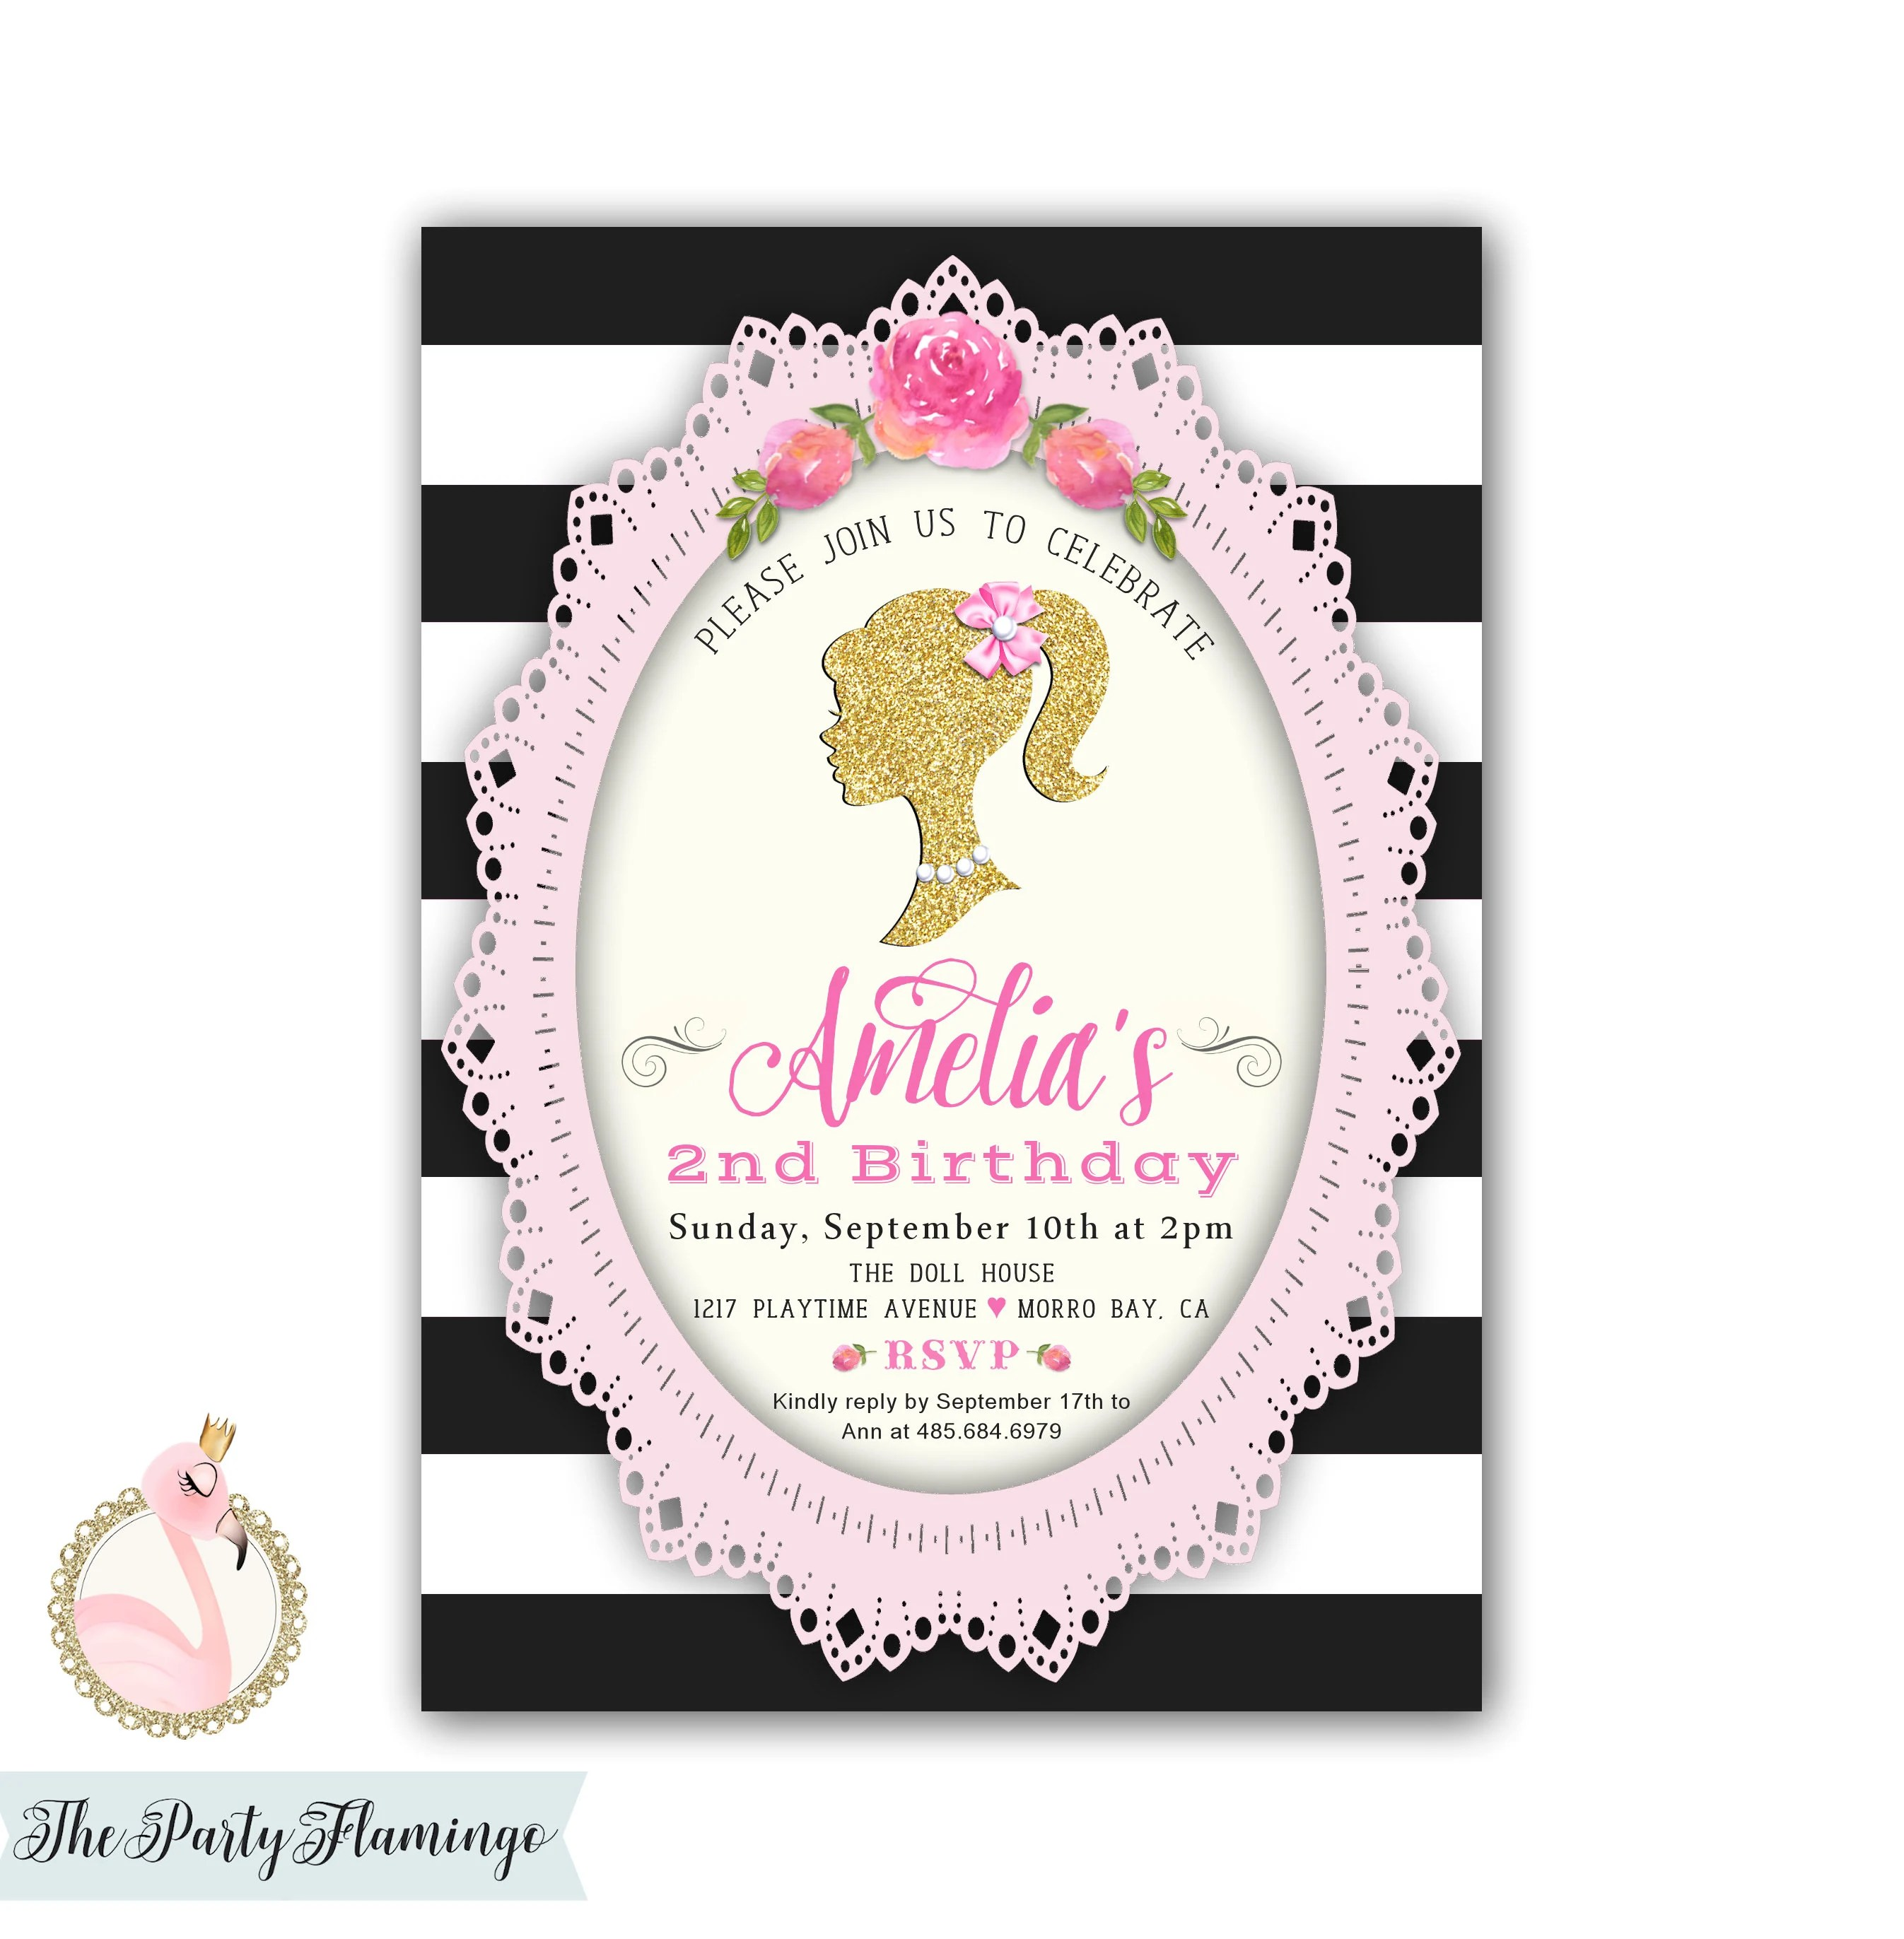 barbie invitation barbie inspired birthday party invitations vintage barbie doll silhouette pink black gold printable or printed cards